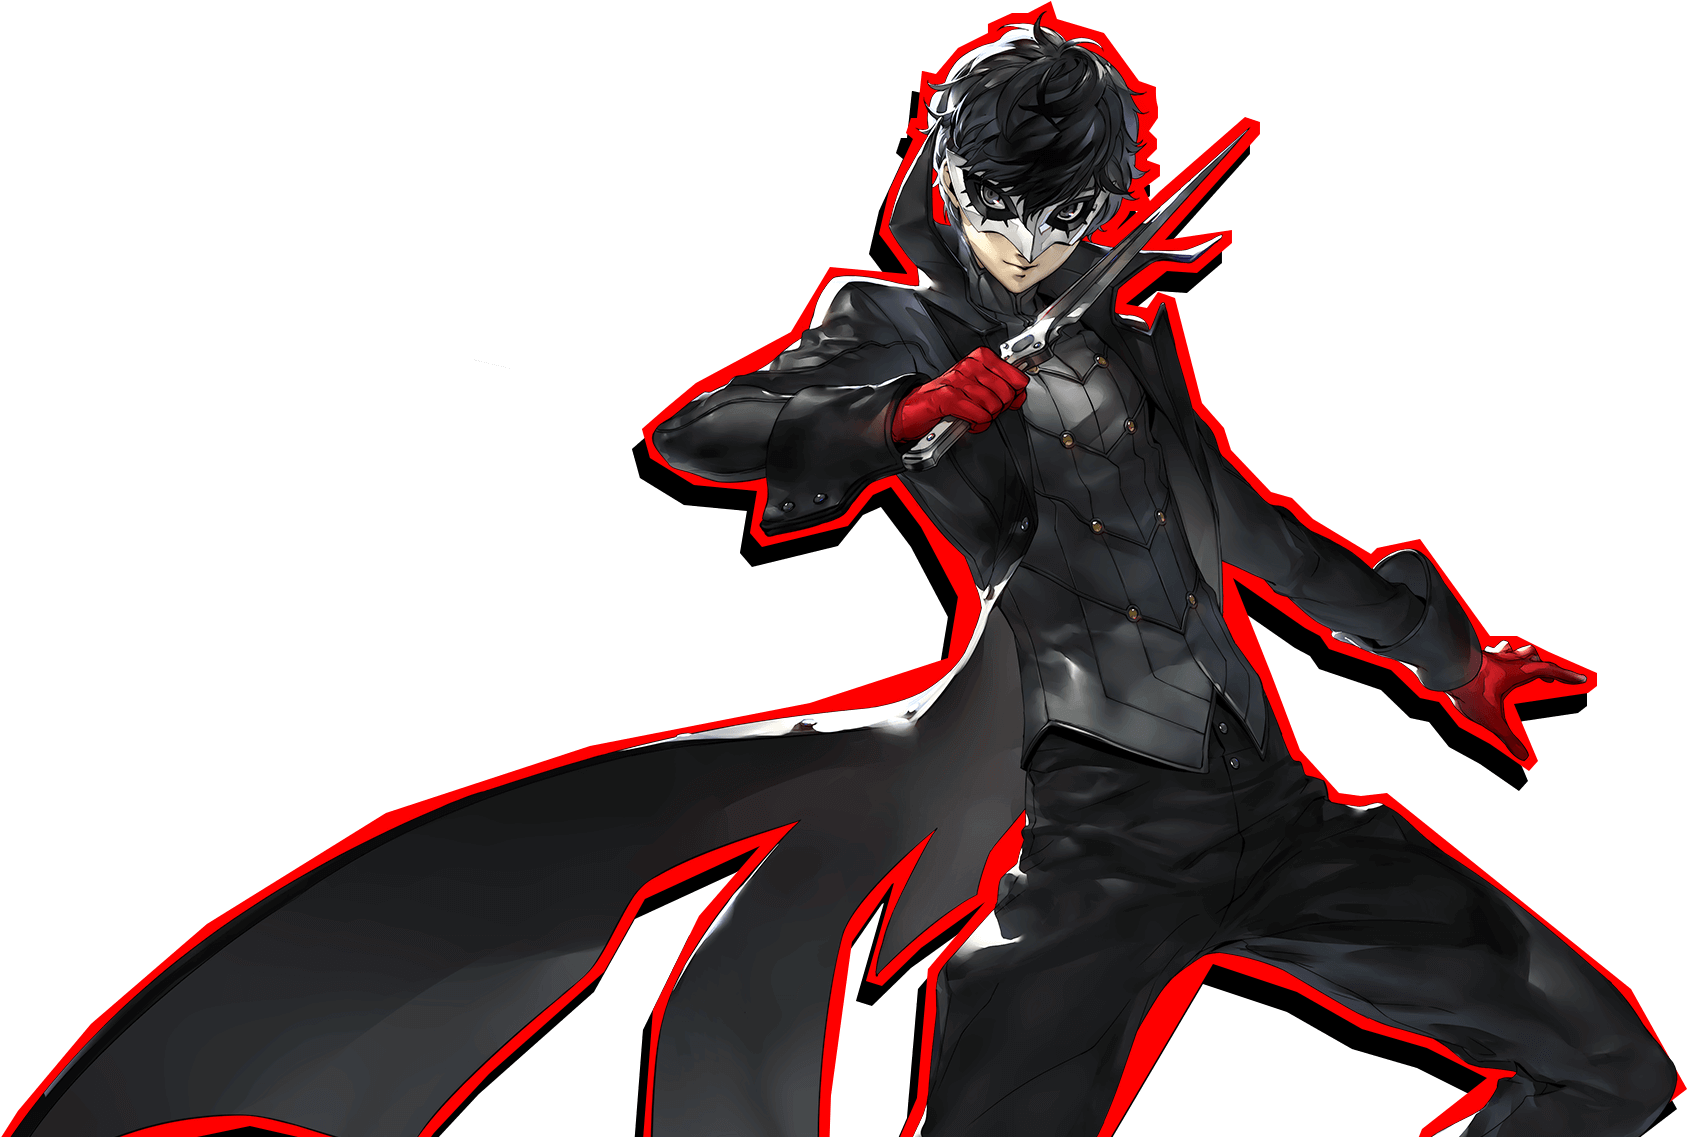 Download A Quiet Guy Who Likes To Wear Earphones Persona 5 Joker Smash Png Image With No Background Pngkey Com